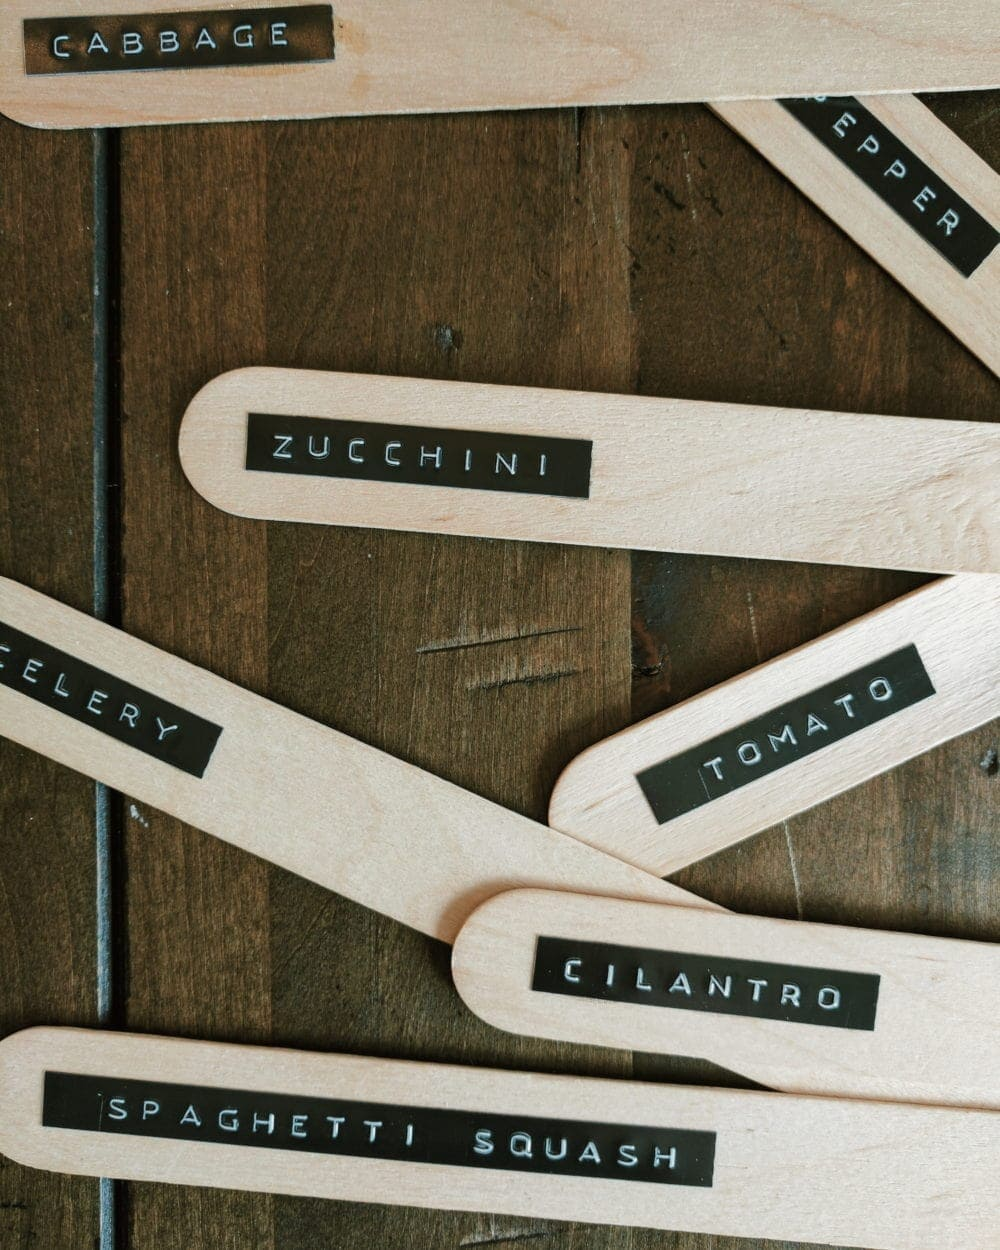 Popsicle sticks used as garden crop label stakes